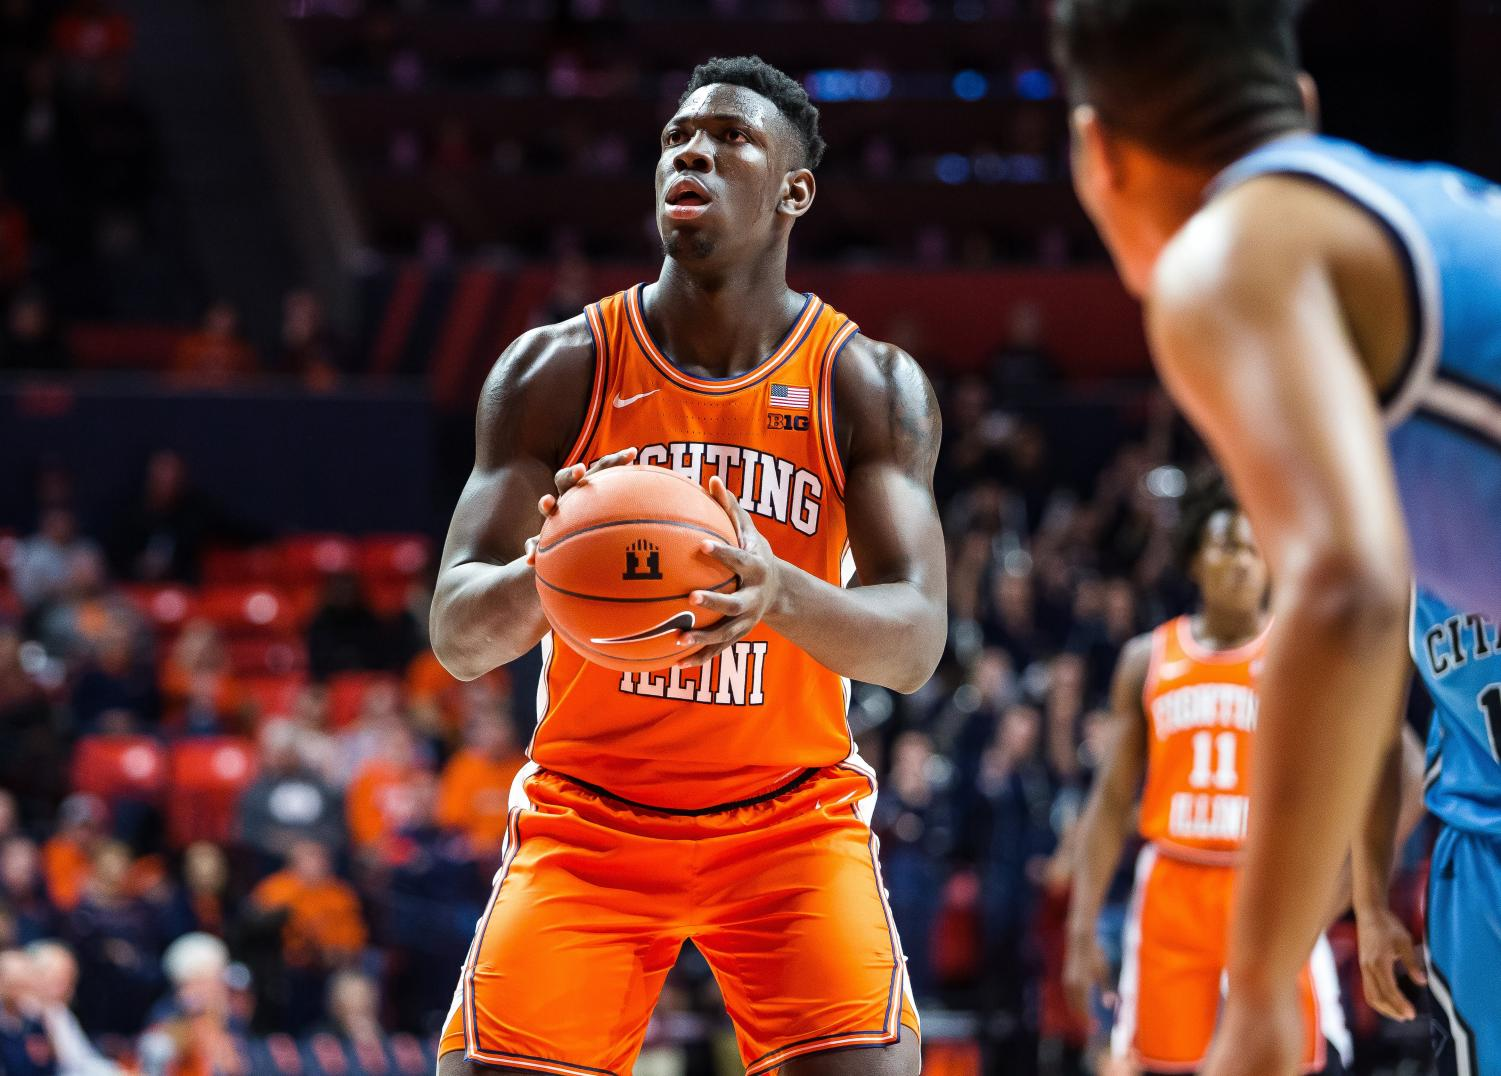 Freshman center Kofi Cockburn shoots a free-throw at the line during Illinois' game against the Citadel at the State Farm Center Nov. 20. Cockburn's fourth double-double in five games helped lead the Illini past the Bulldogs 85-57 on Wednesday night. Captured at State Farm Center on 20 Nov, 2019 by Jonathan Bonaguro.